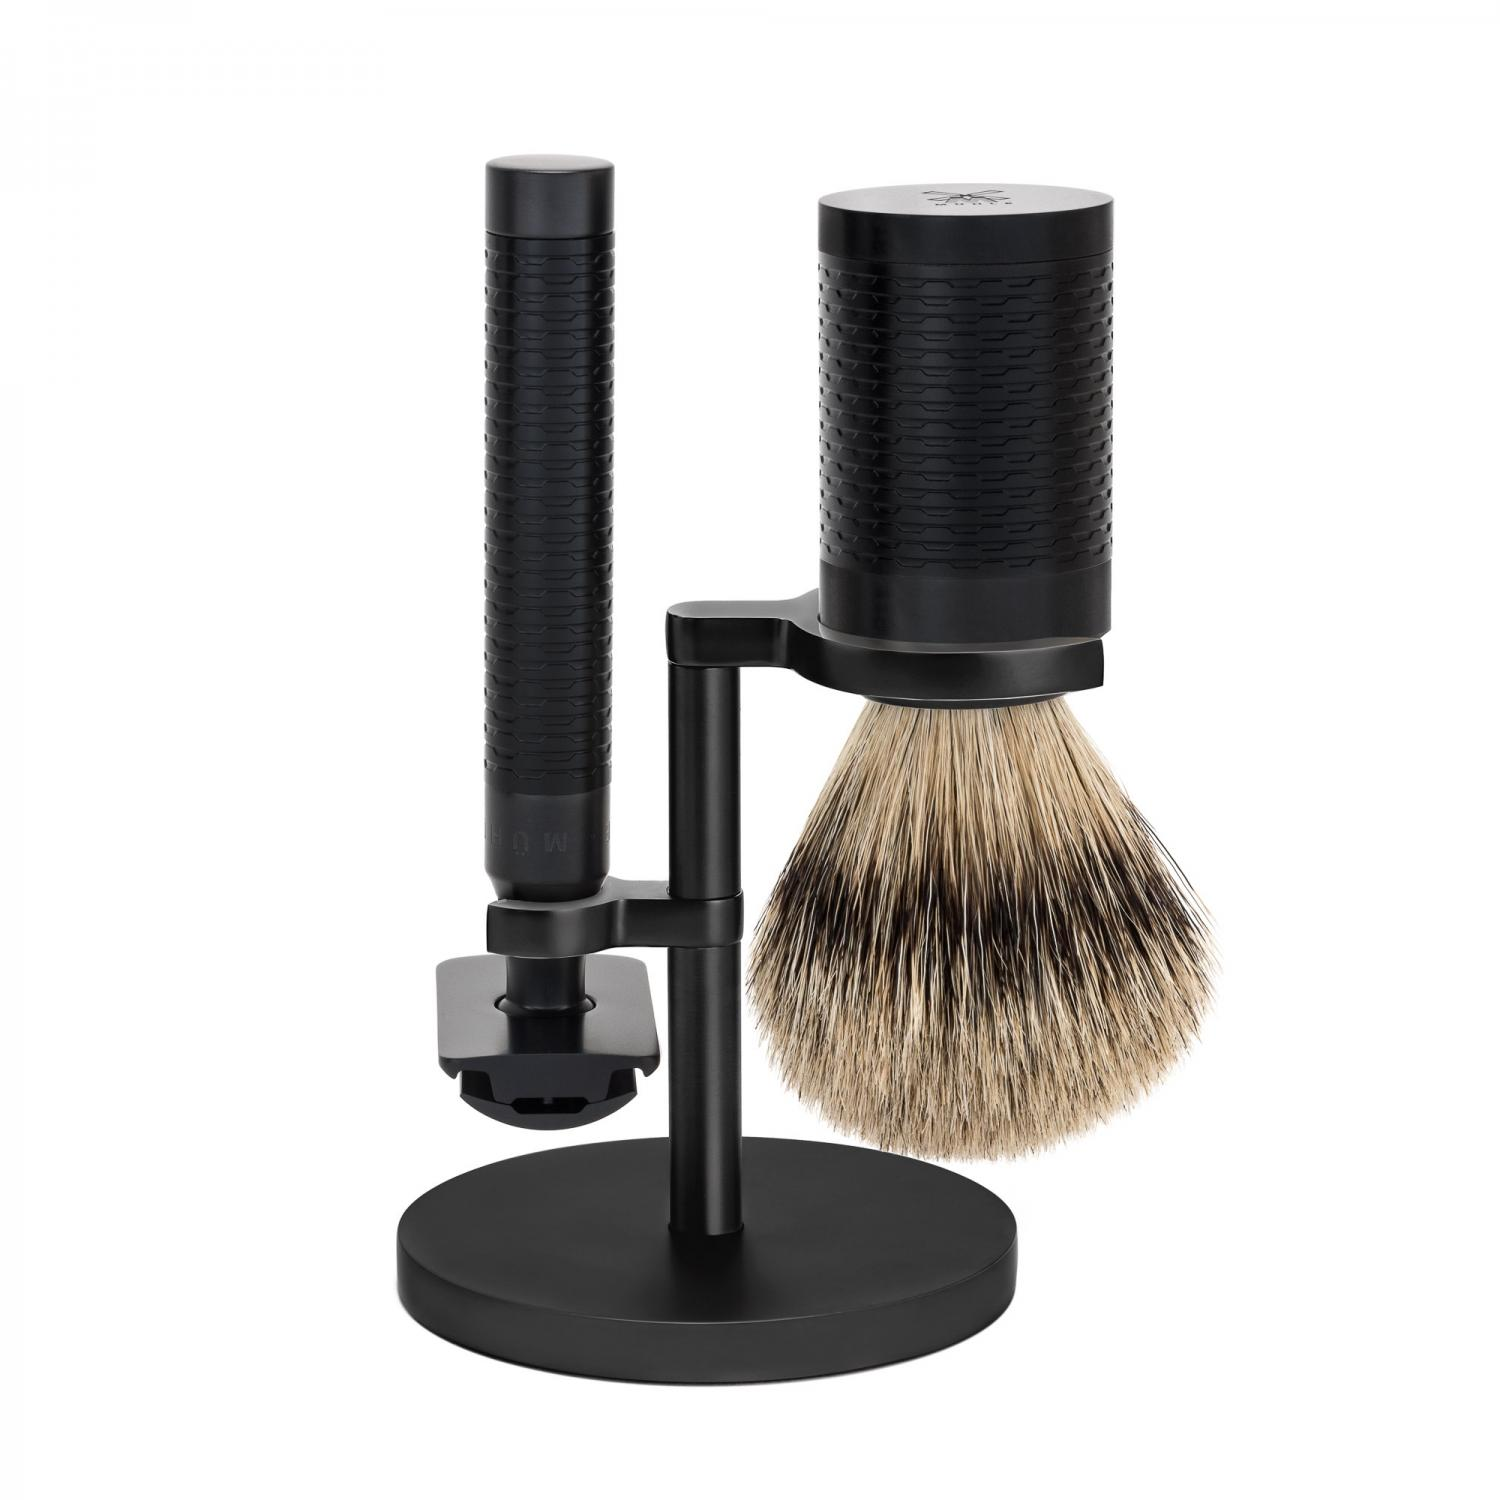 ROCCA Black Stainless Steel 3-Piece Silvertip Badger/Safety Razor Shaving Set